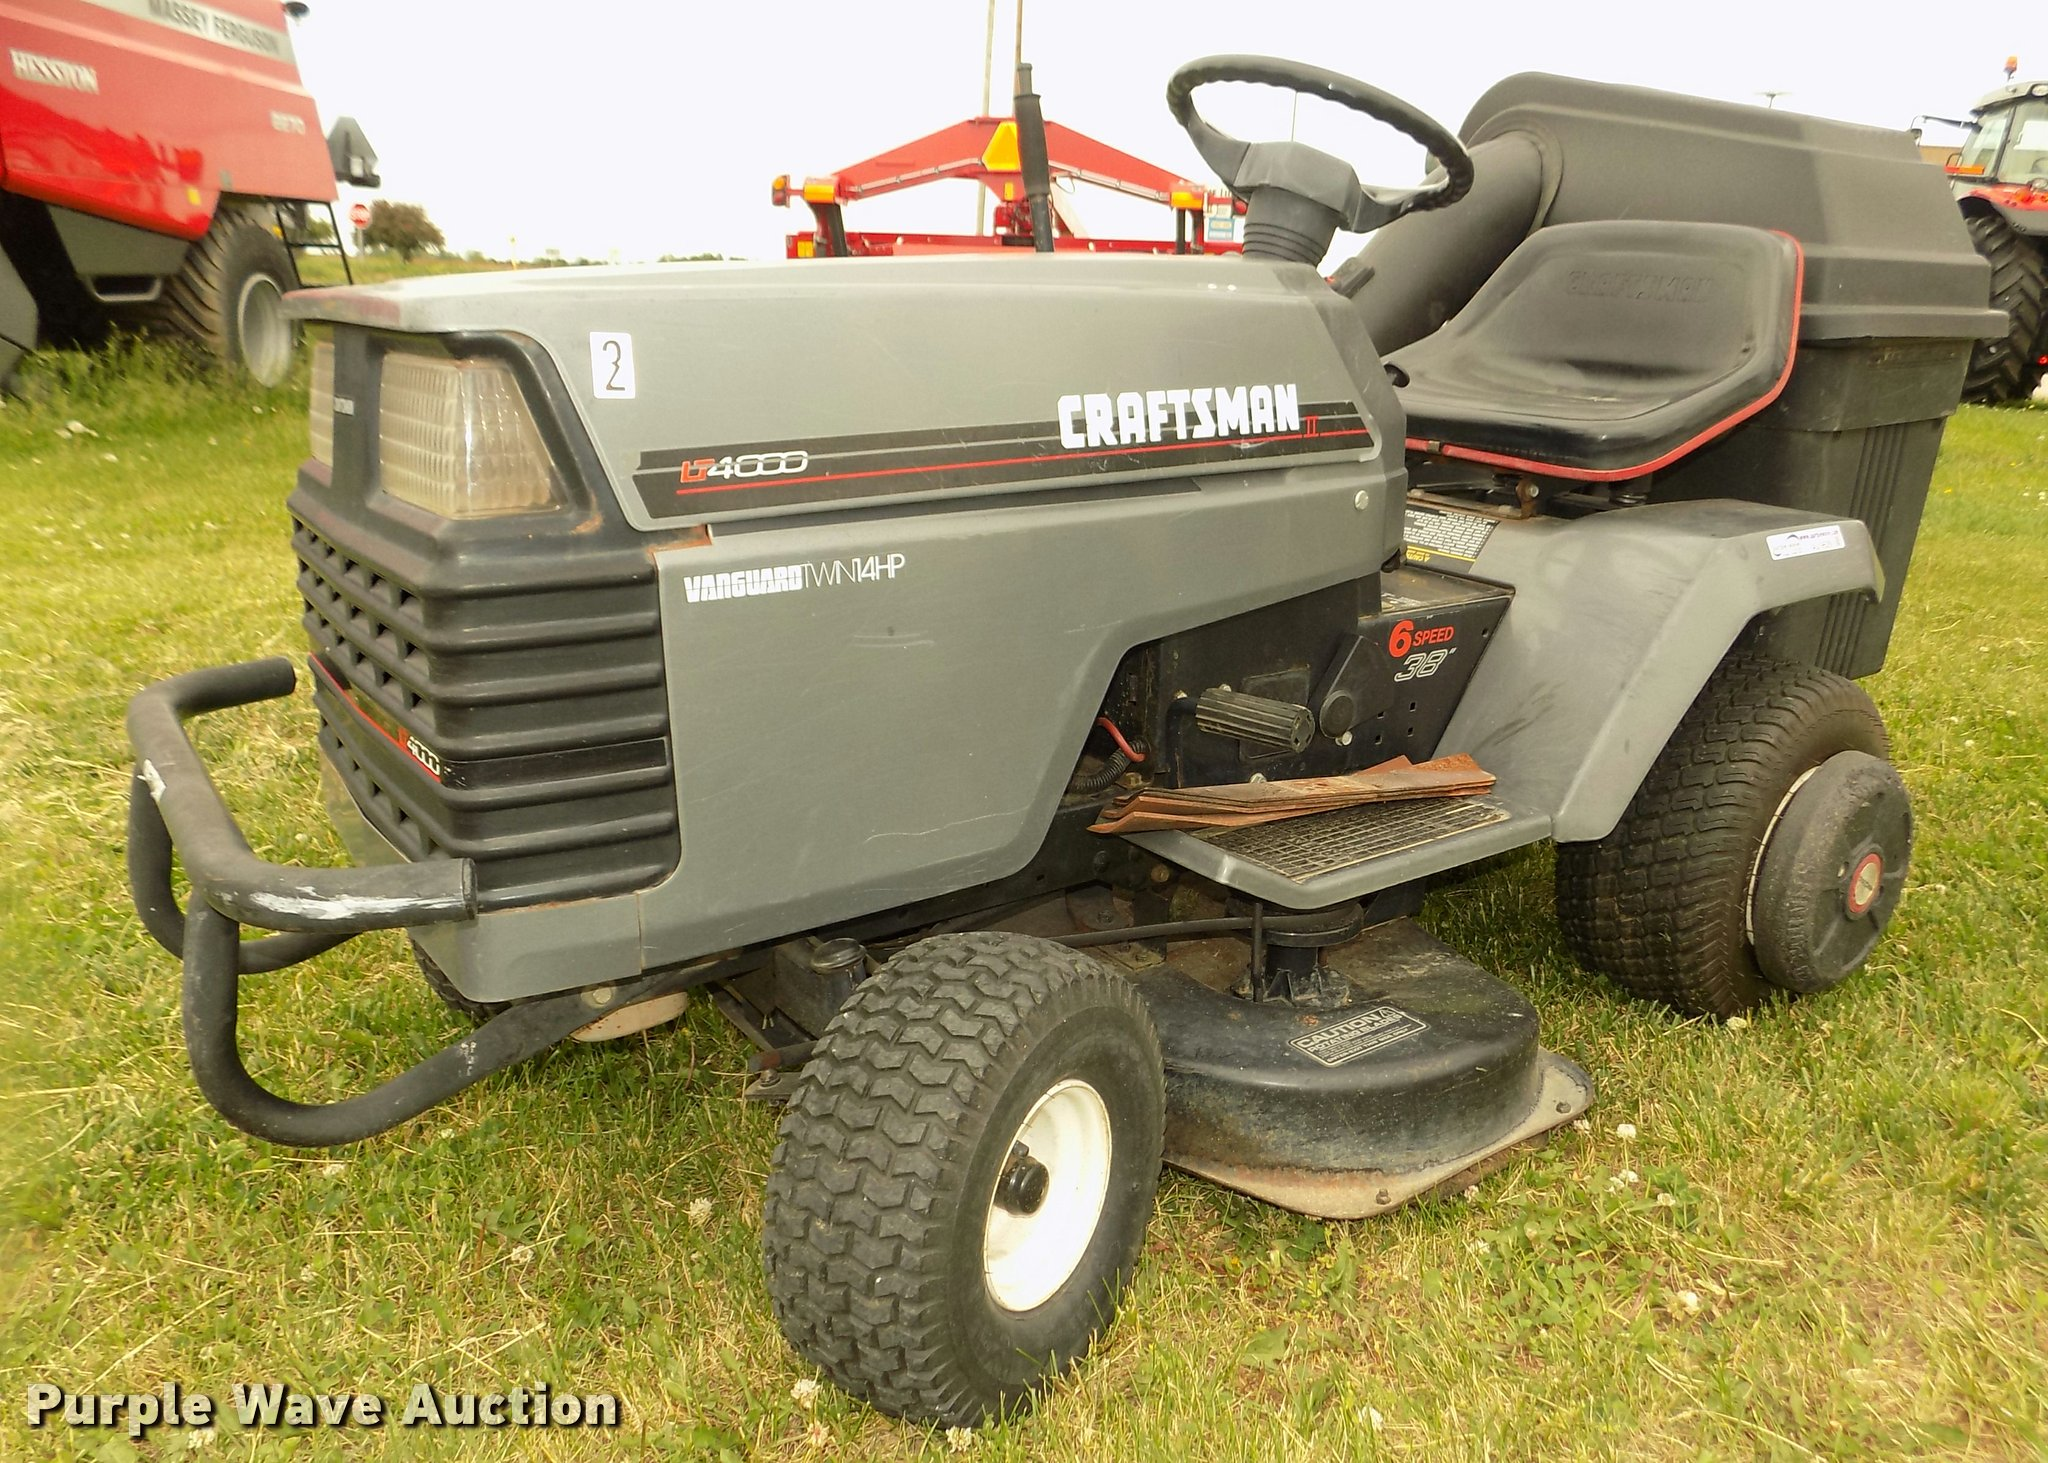 Sears Craftsman LT4000 lawn mower | Item AU9529 | SOLD! June...